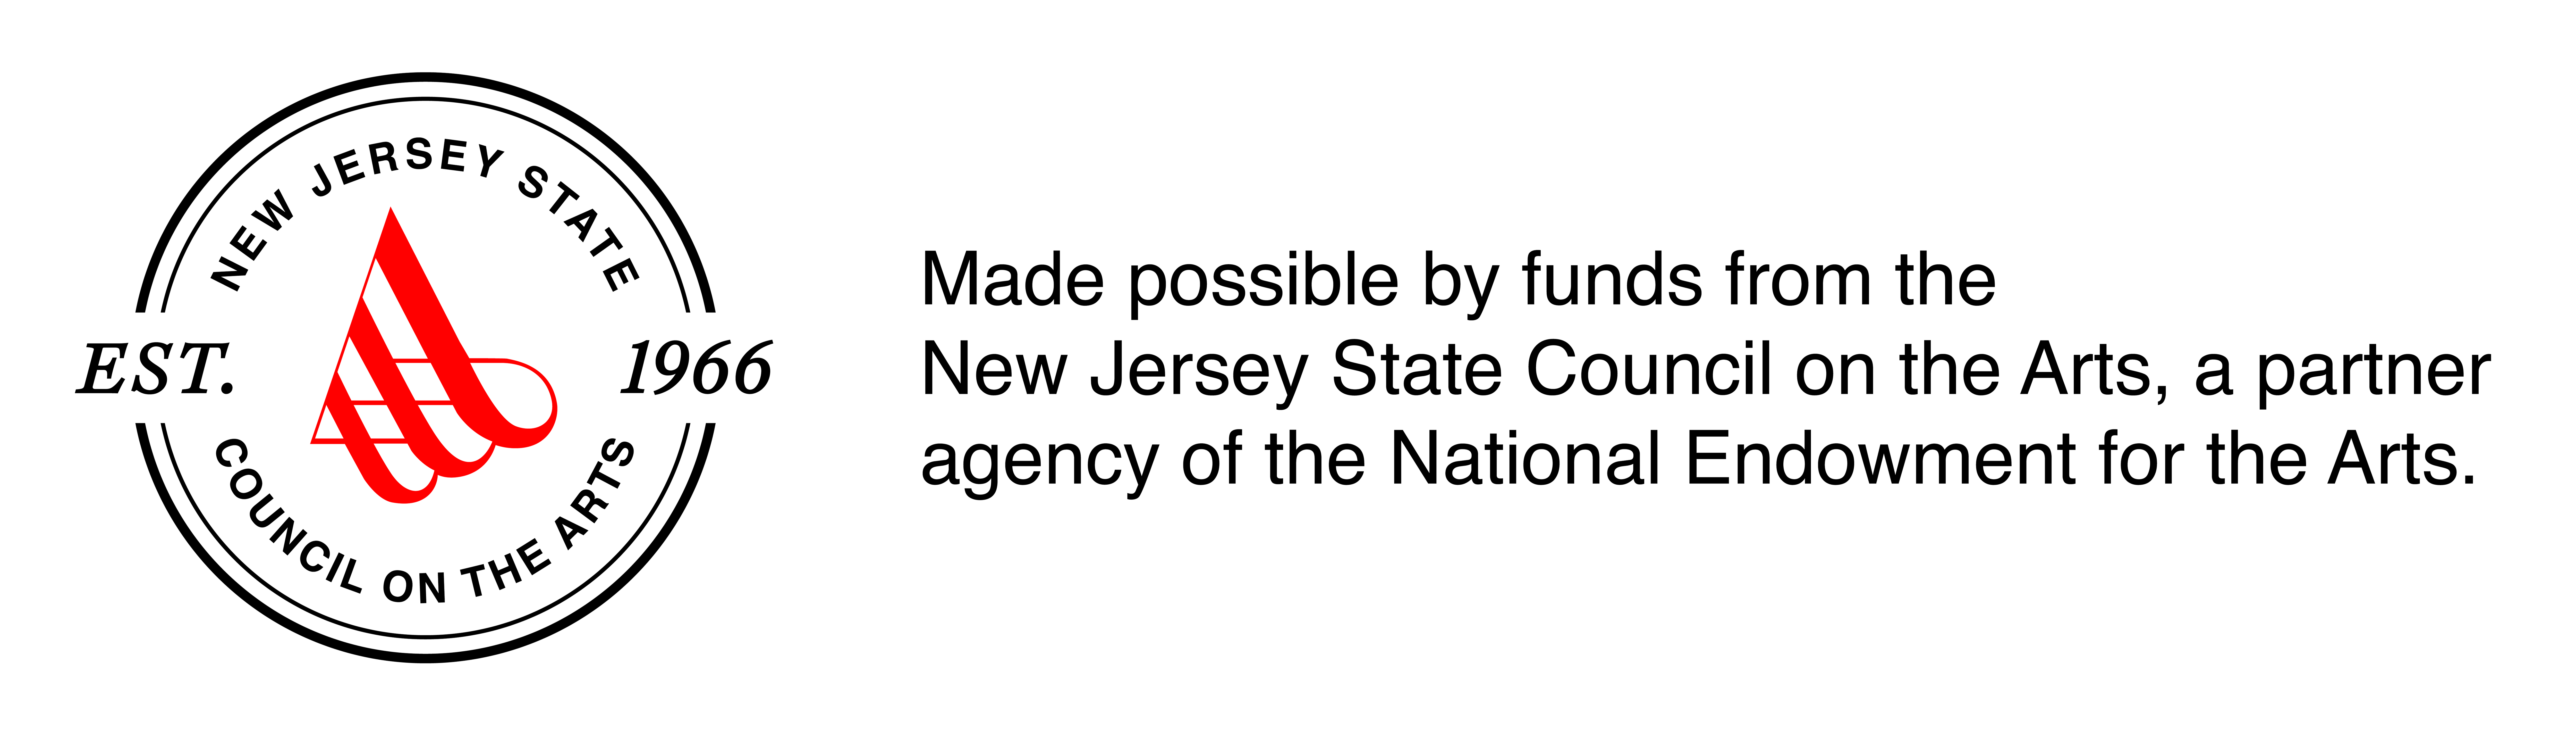 njca_logo_statement_full_color_black